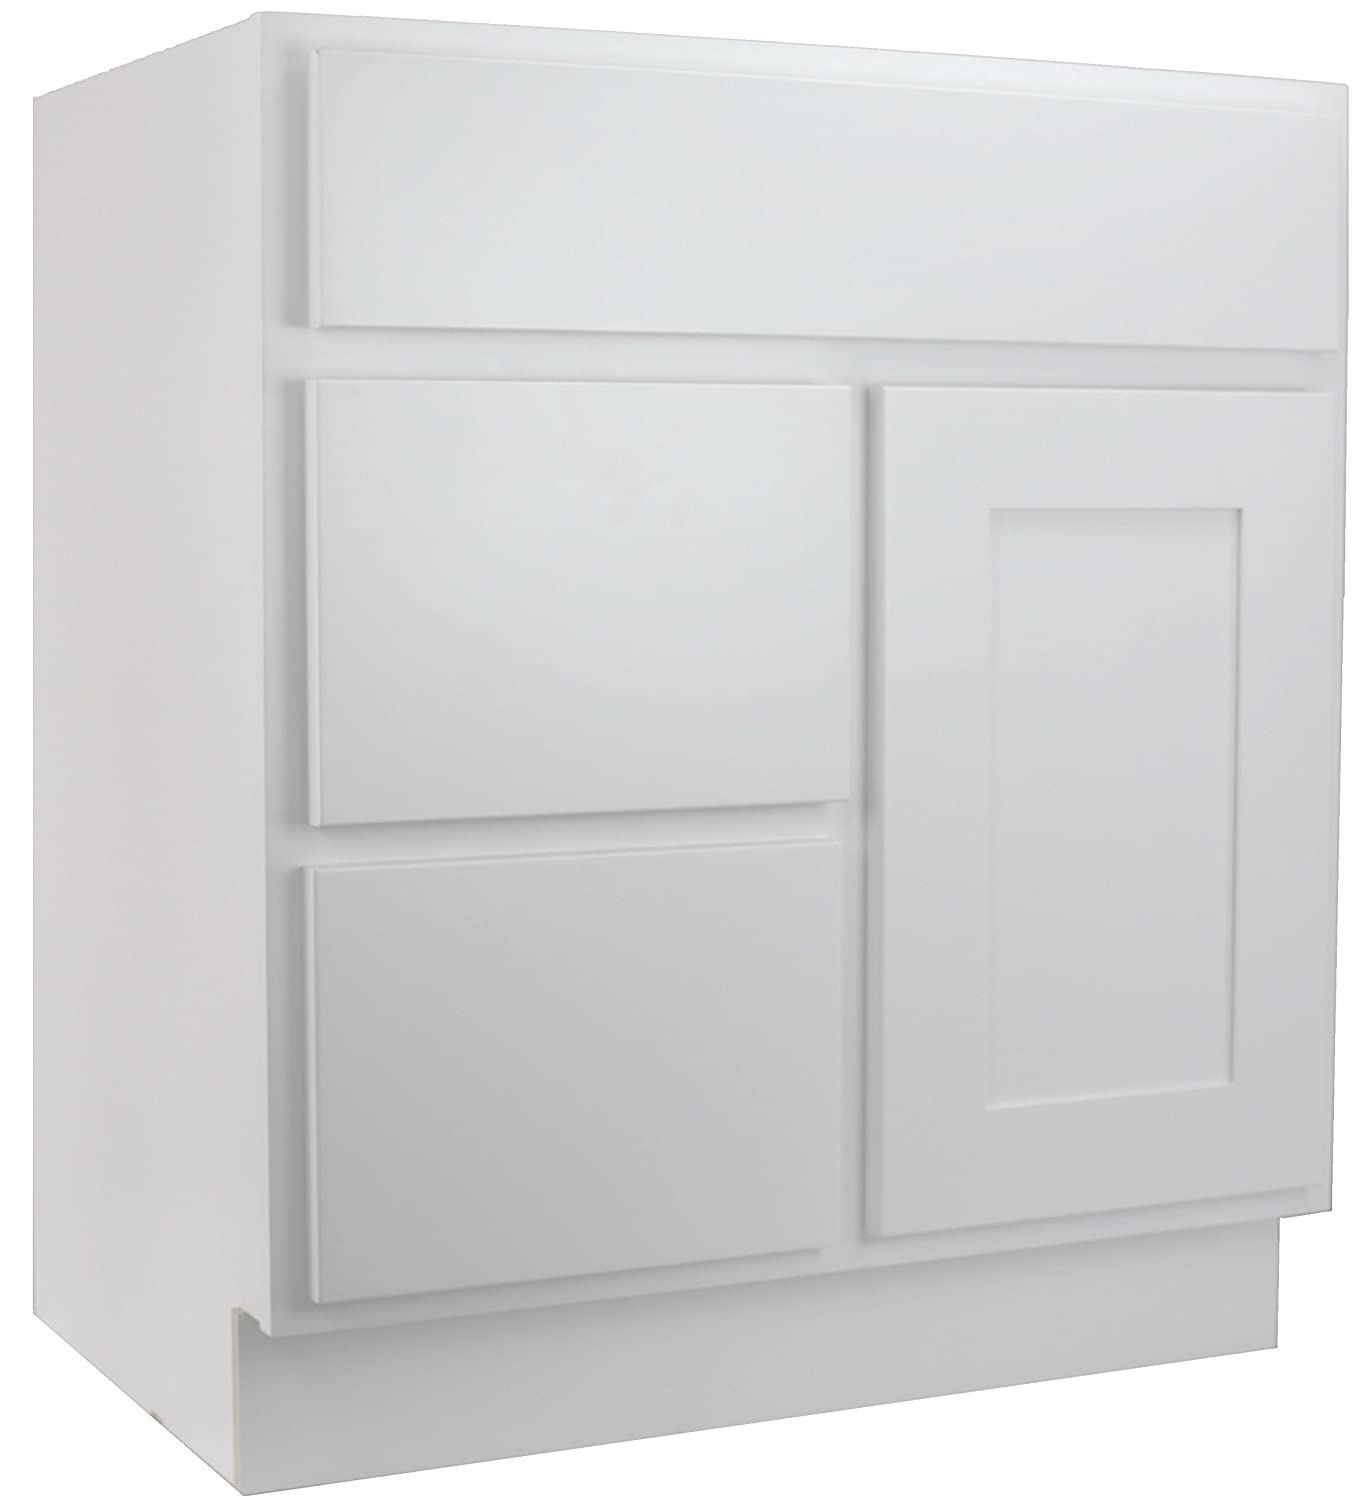 On Sale Cabinet Mania White Shaker 30 Inch Bathroom Vanity With Left Drawers Sink Rta Cabinet